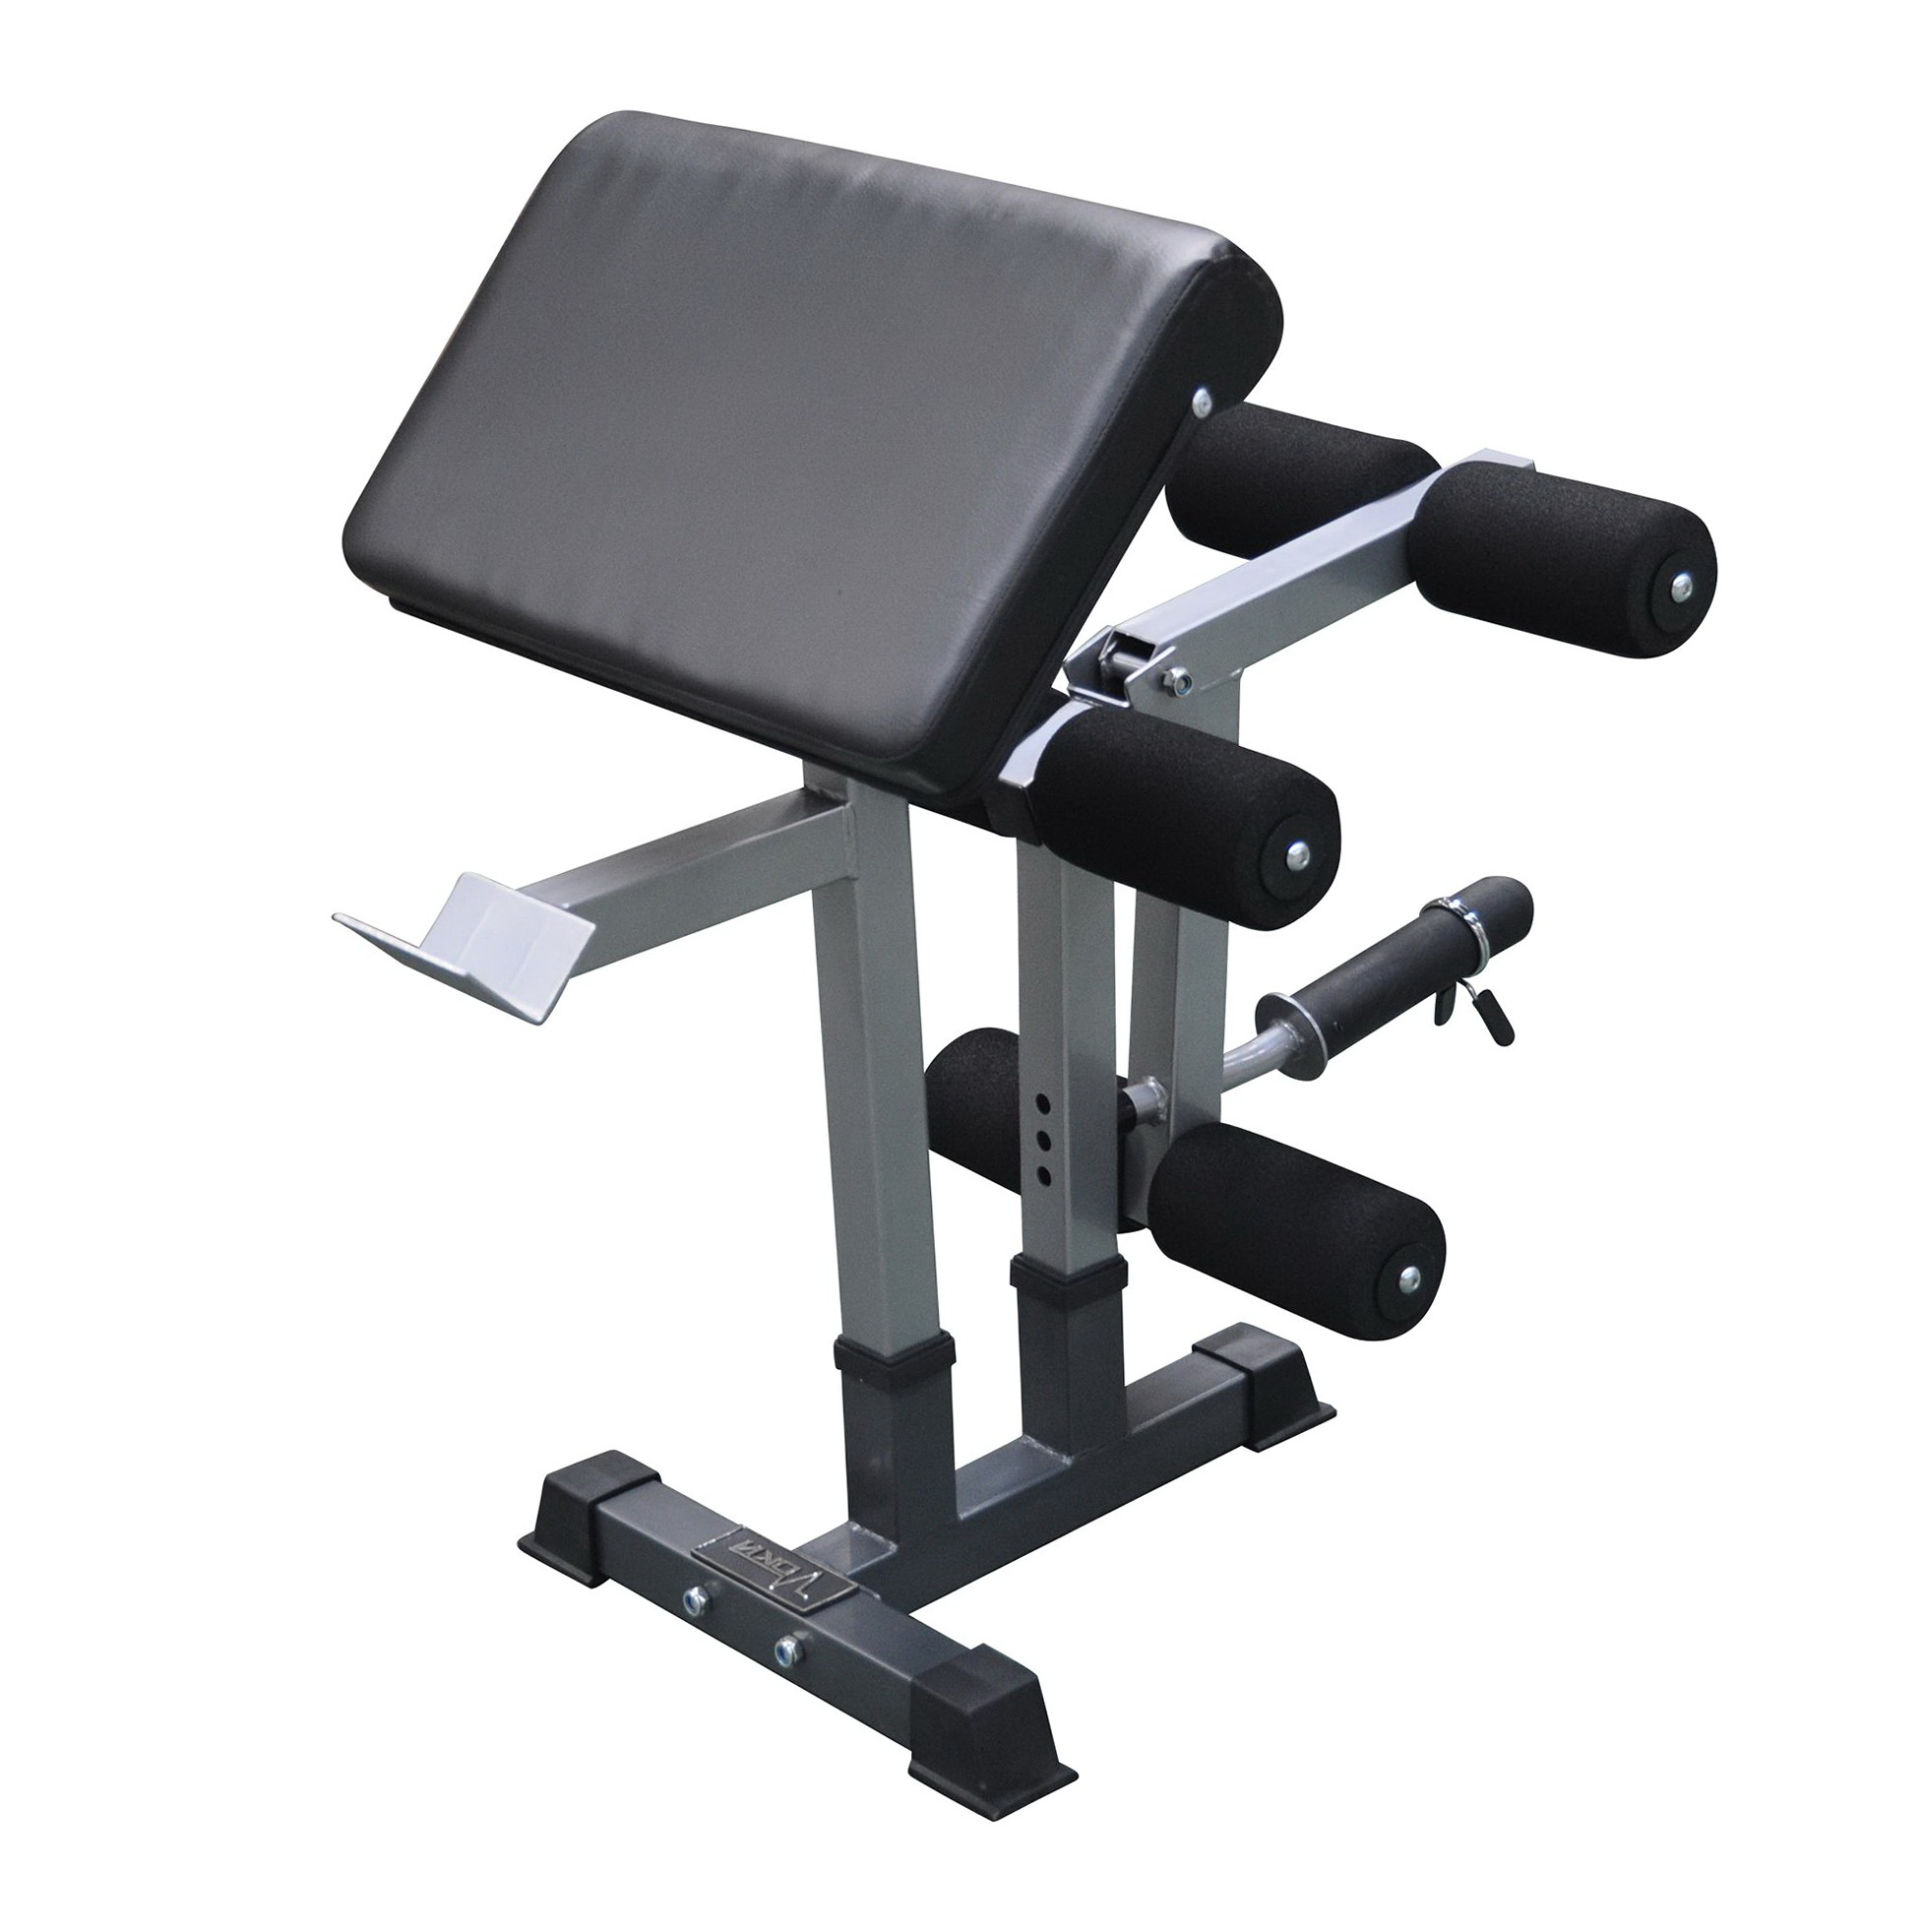 Folding Weight Bench With Preacher Curl Attachment Home